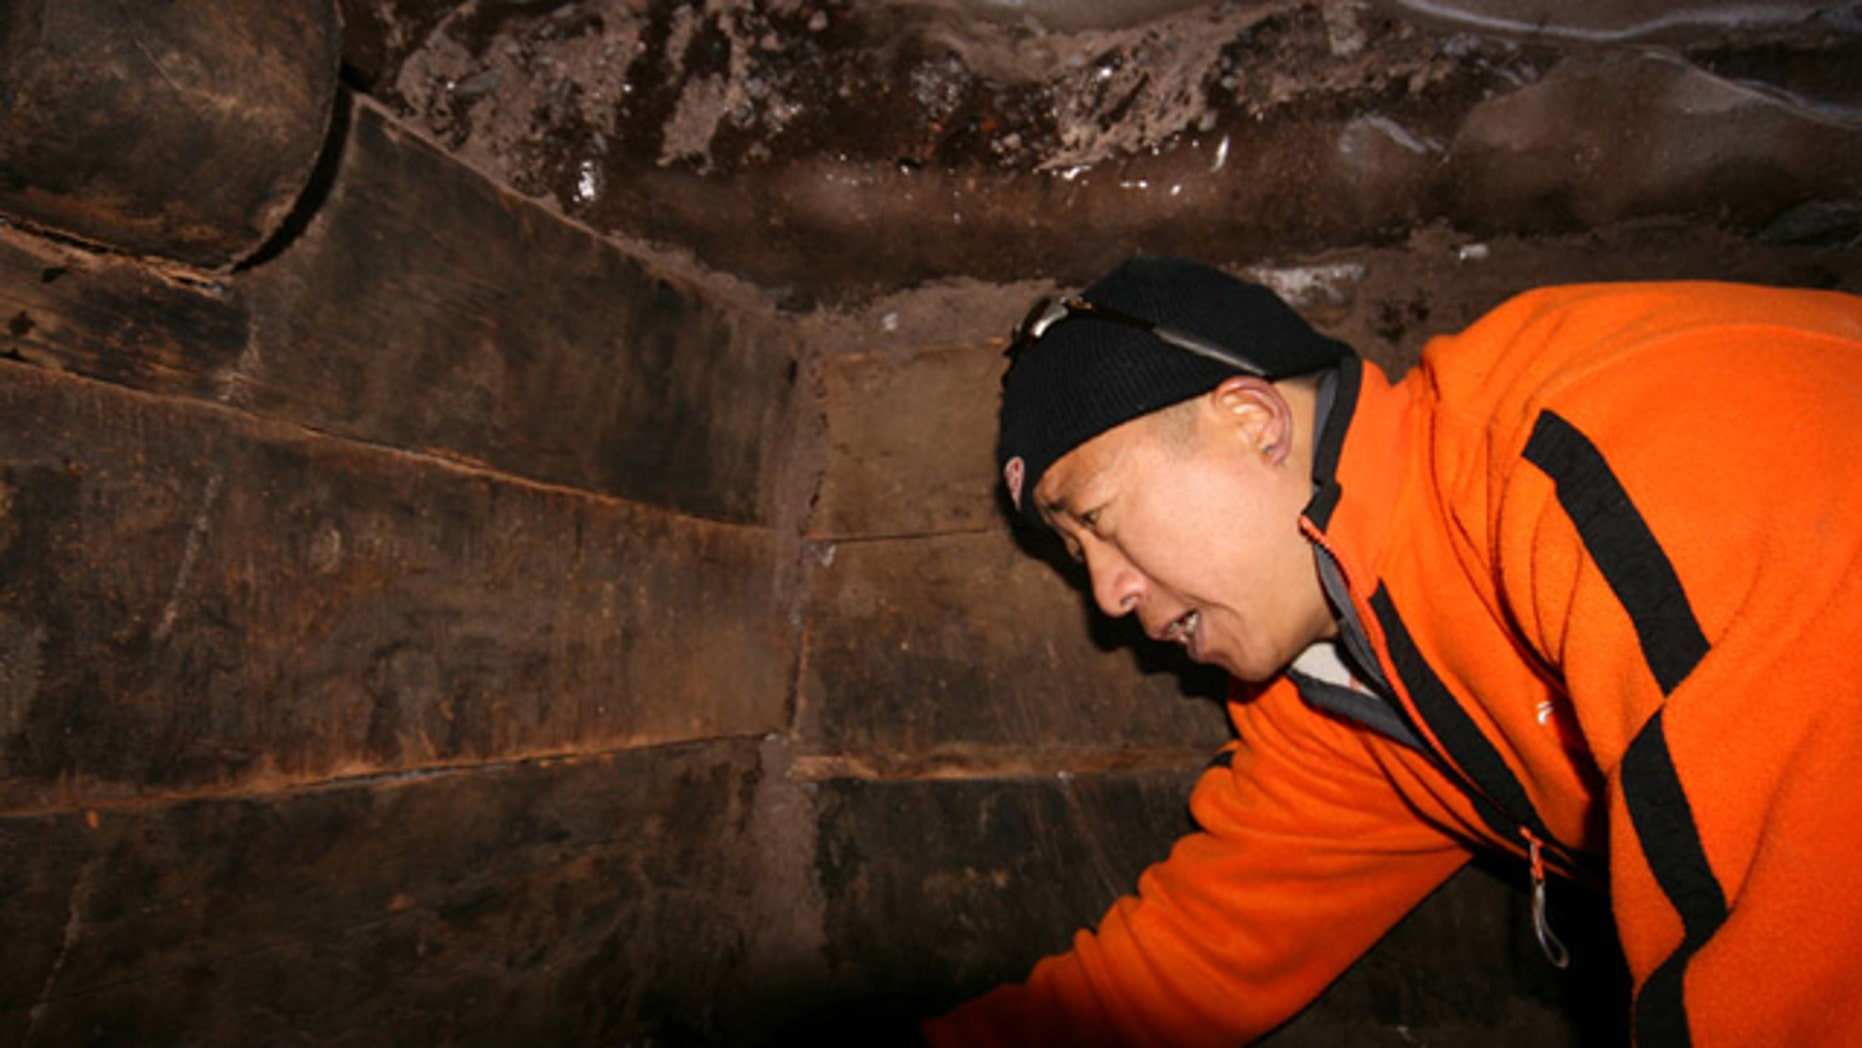 An explorer examines wooden beams inside what some are nearly certain is the remains of Noah's Ark.